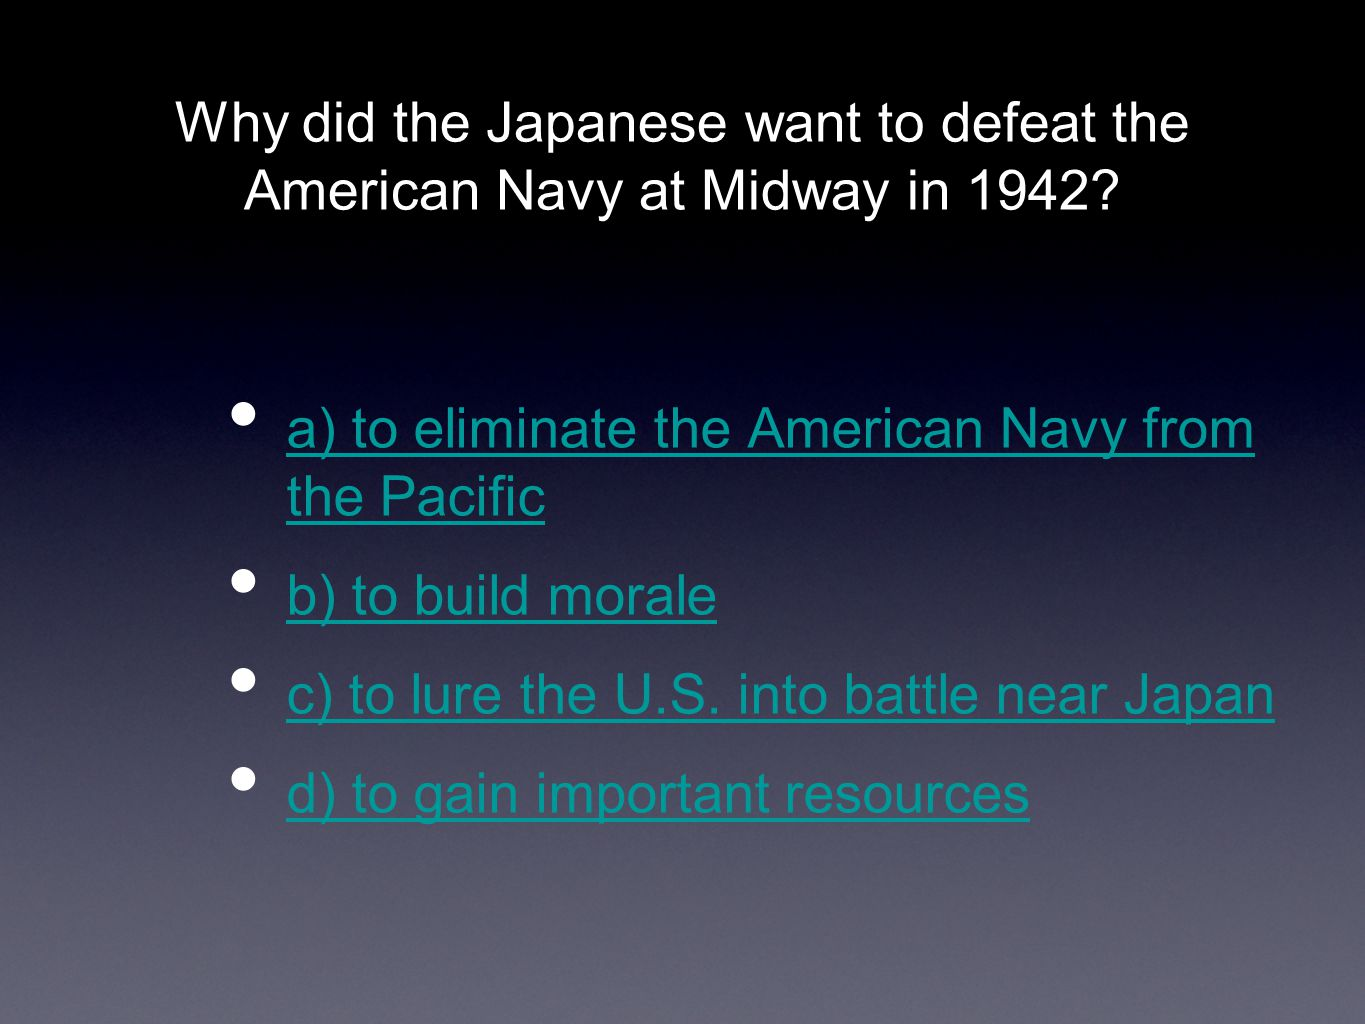 a) to eliminate the American Navy from the Pacific a) to eliminate the American Navy from the Pacific b) to build morale c) to lure the U.S. into batt